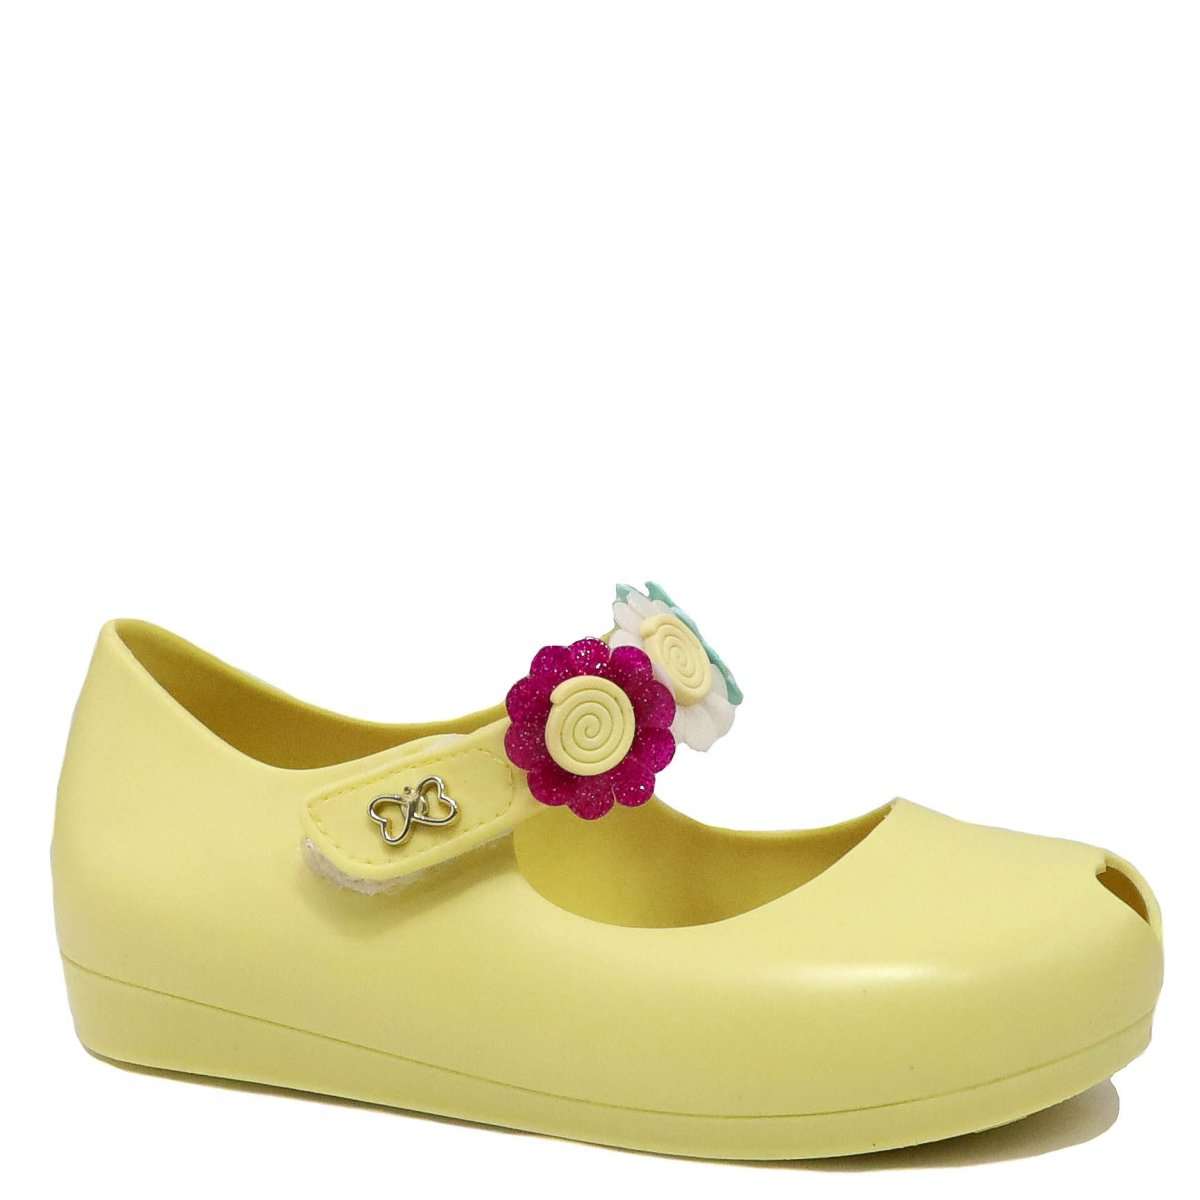 Sapatilha Infantil World Colors Peep Toe Flor Amarelo